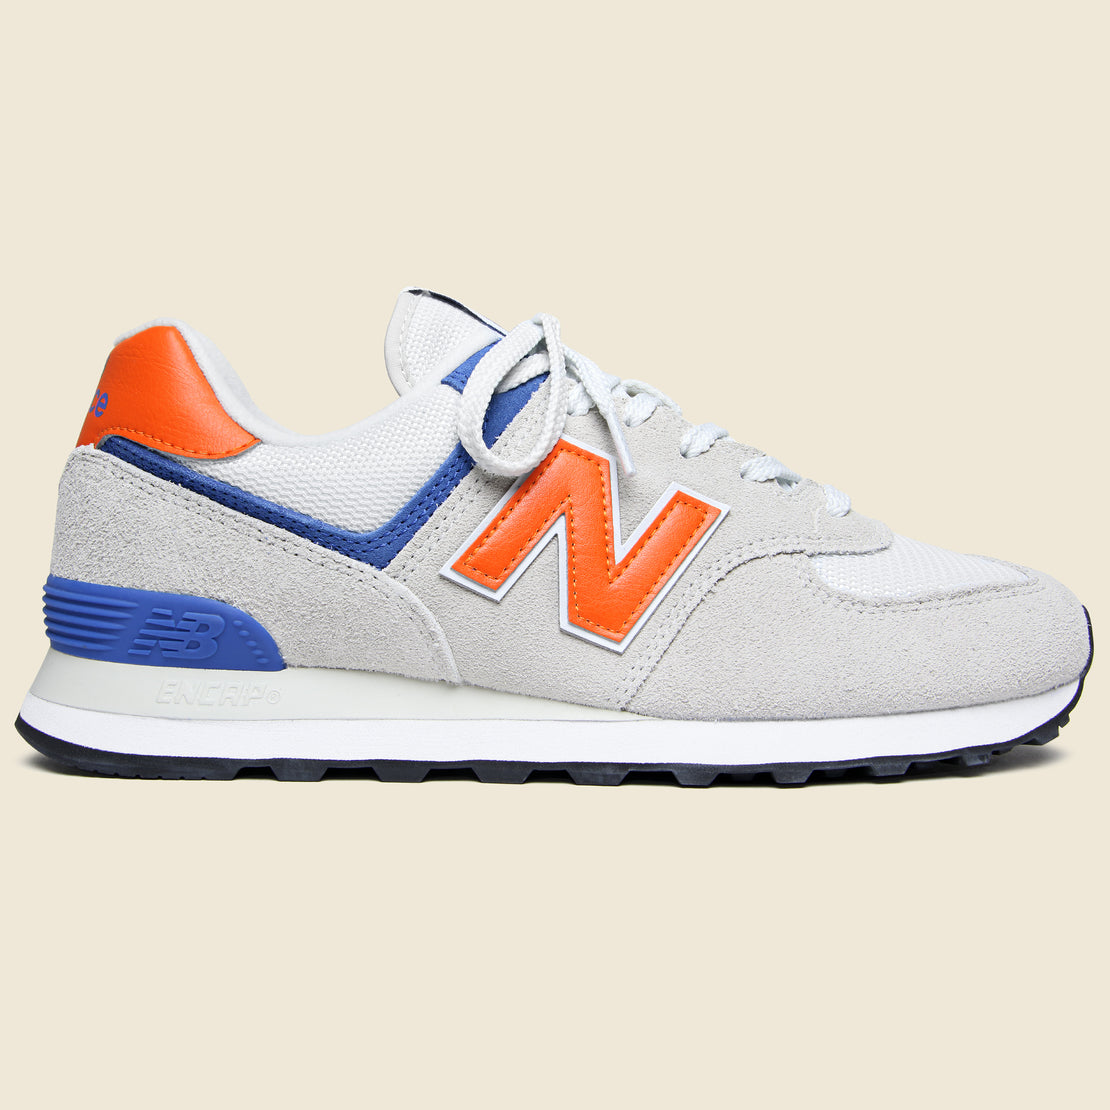 New Balance 574 Sneaker - Blue/Orange